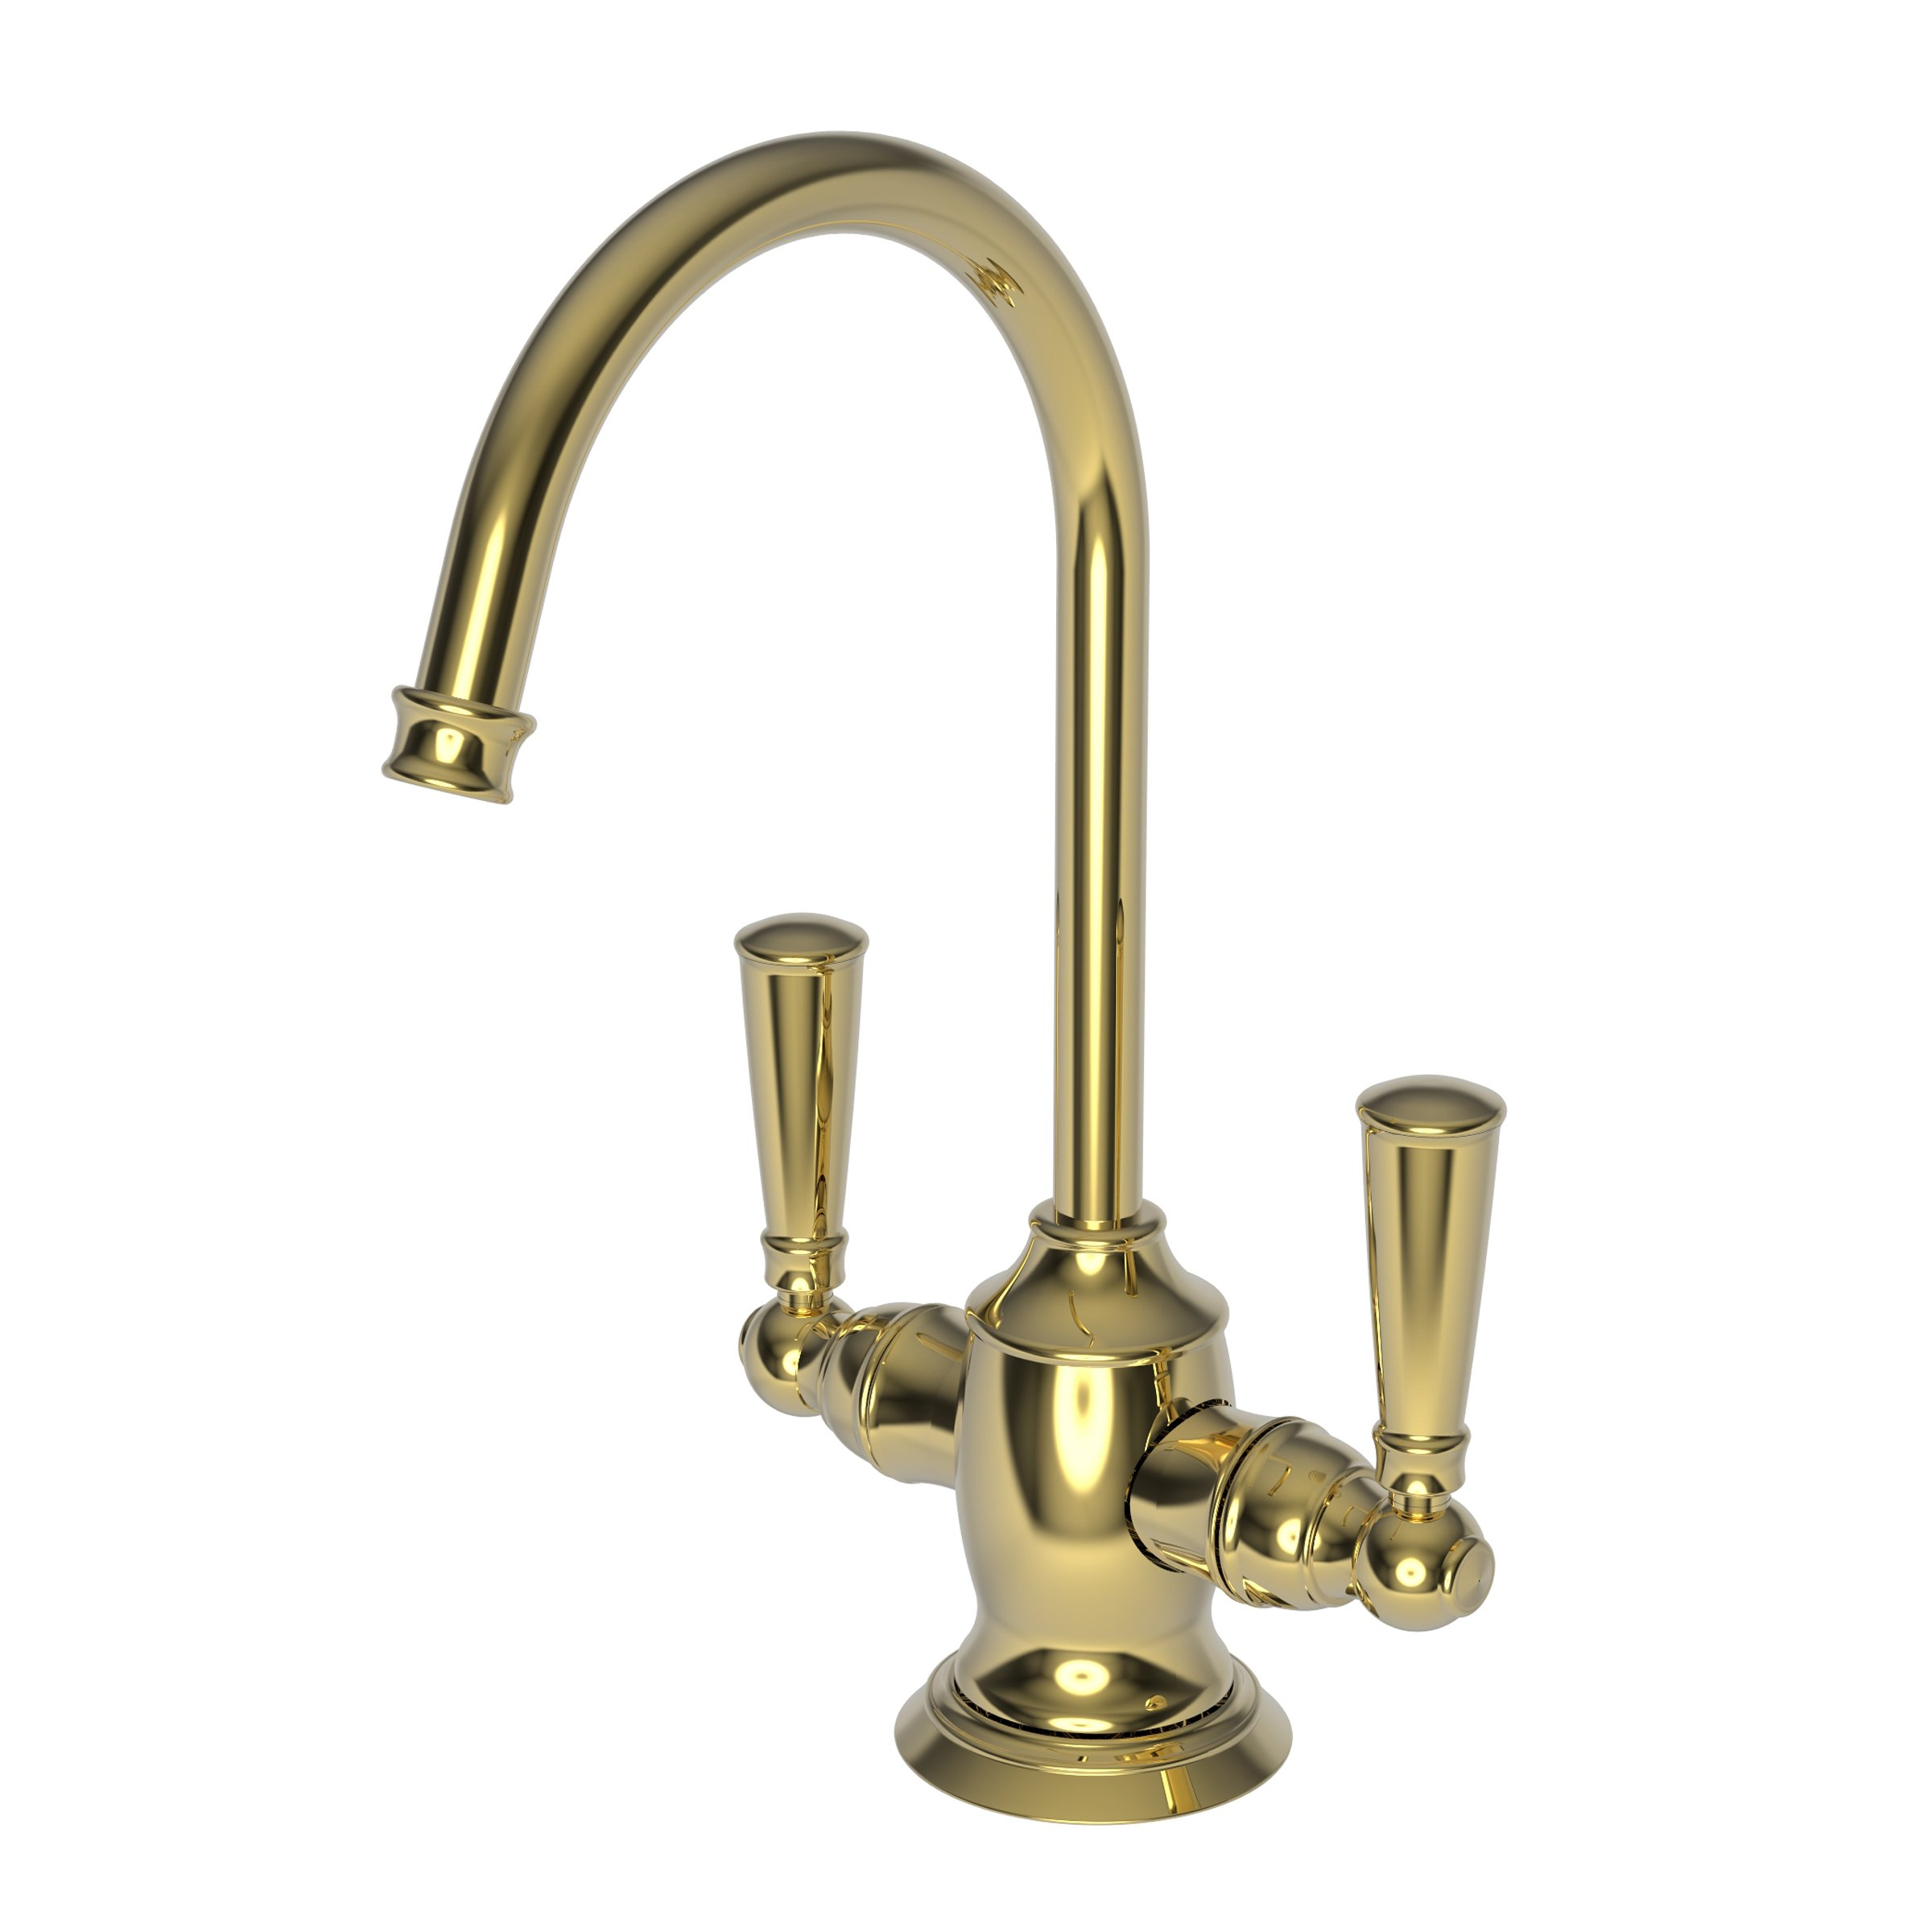 Newport Brass 2470 5603 Jacobean 2470 5603 Hot And Cold Water Dispenser Faucet Newport Brass